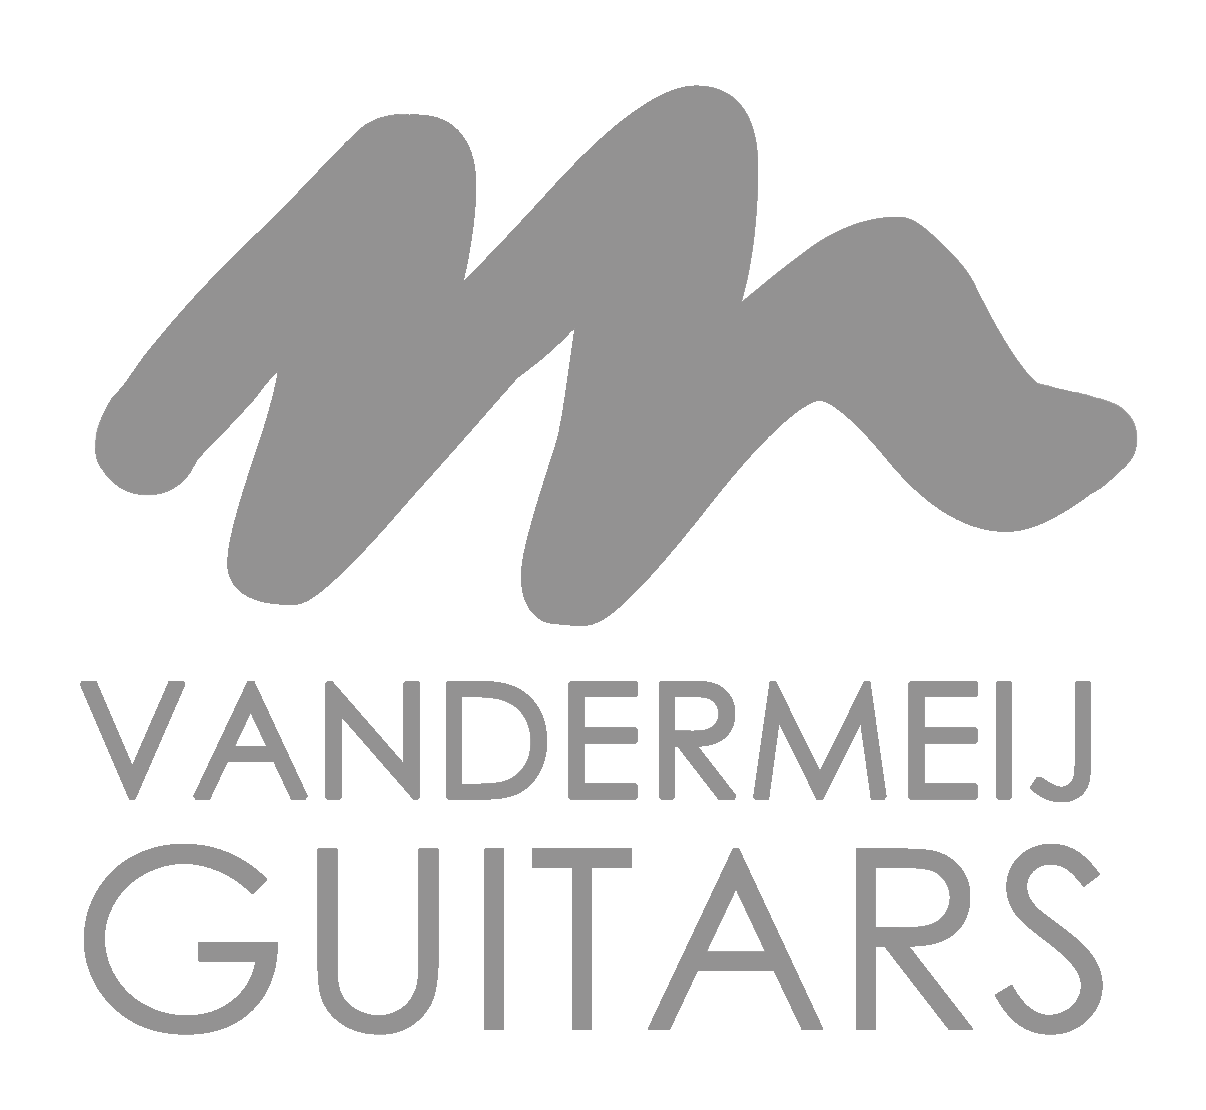 vandermeijlogo2FINAL copy copy GRAY